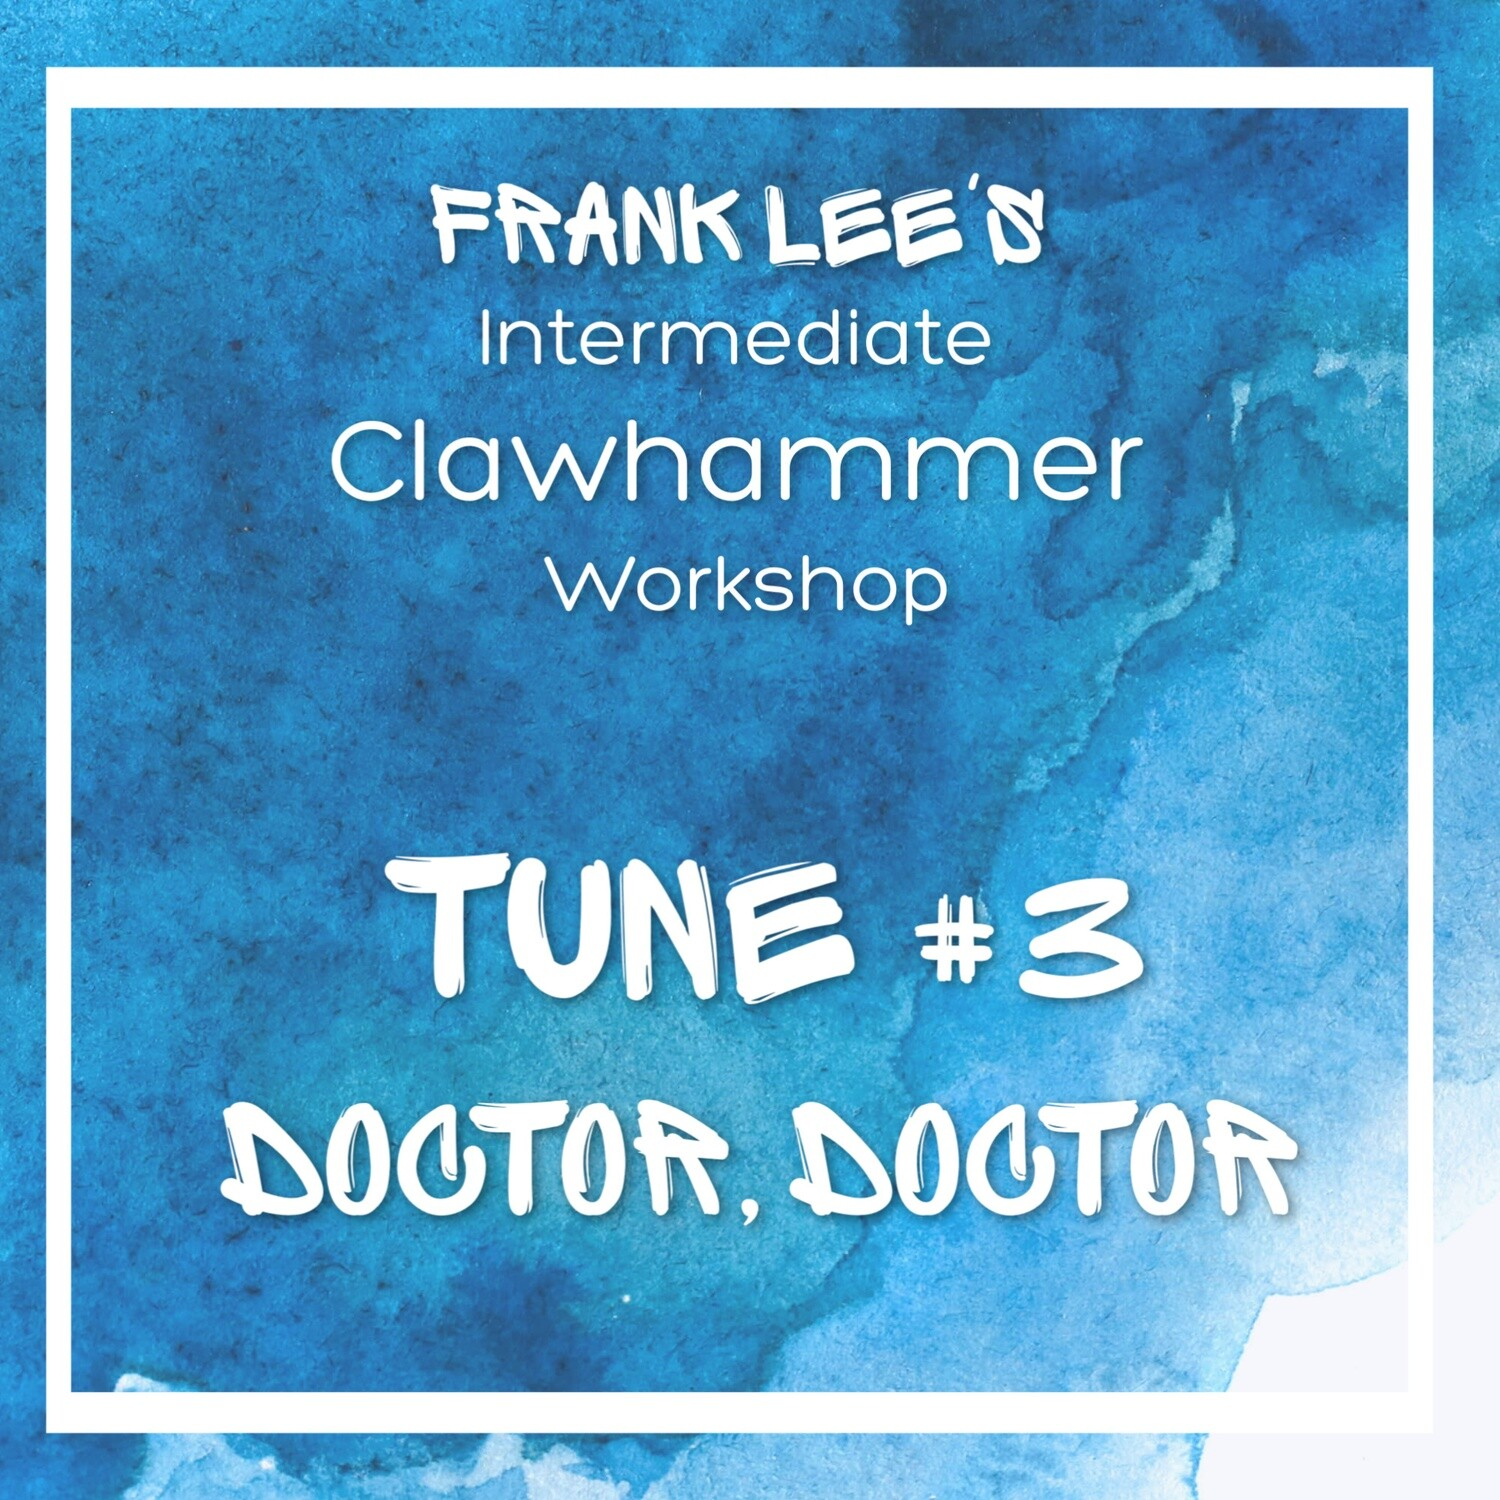 Intermediate Clawhammer Banjo Workshop Tune #3 - Doctor, Doctor